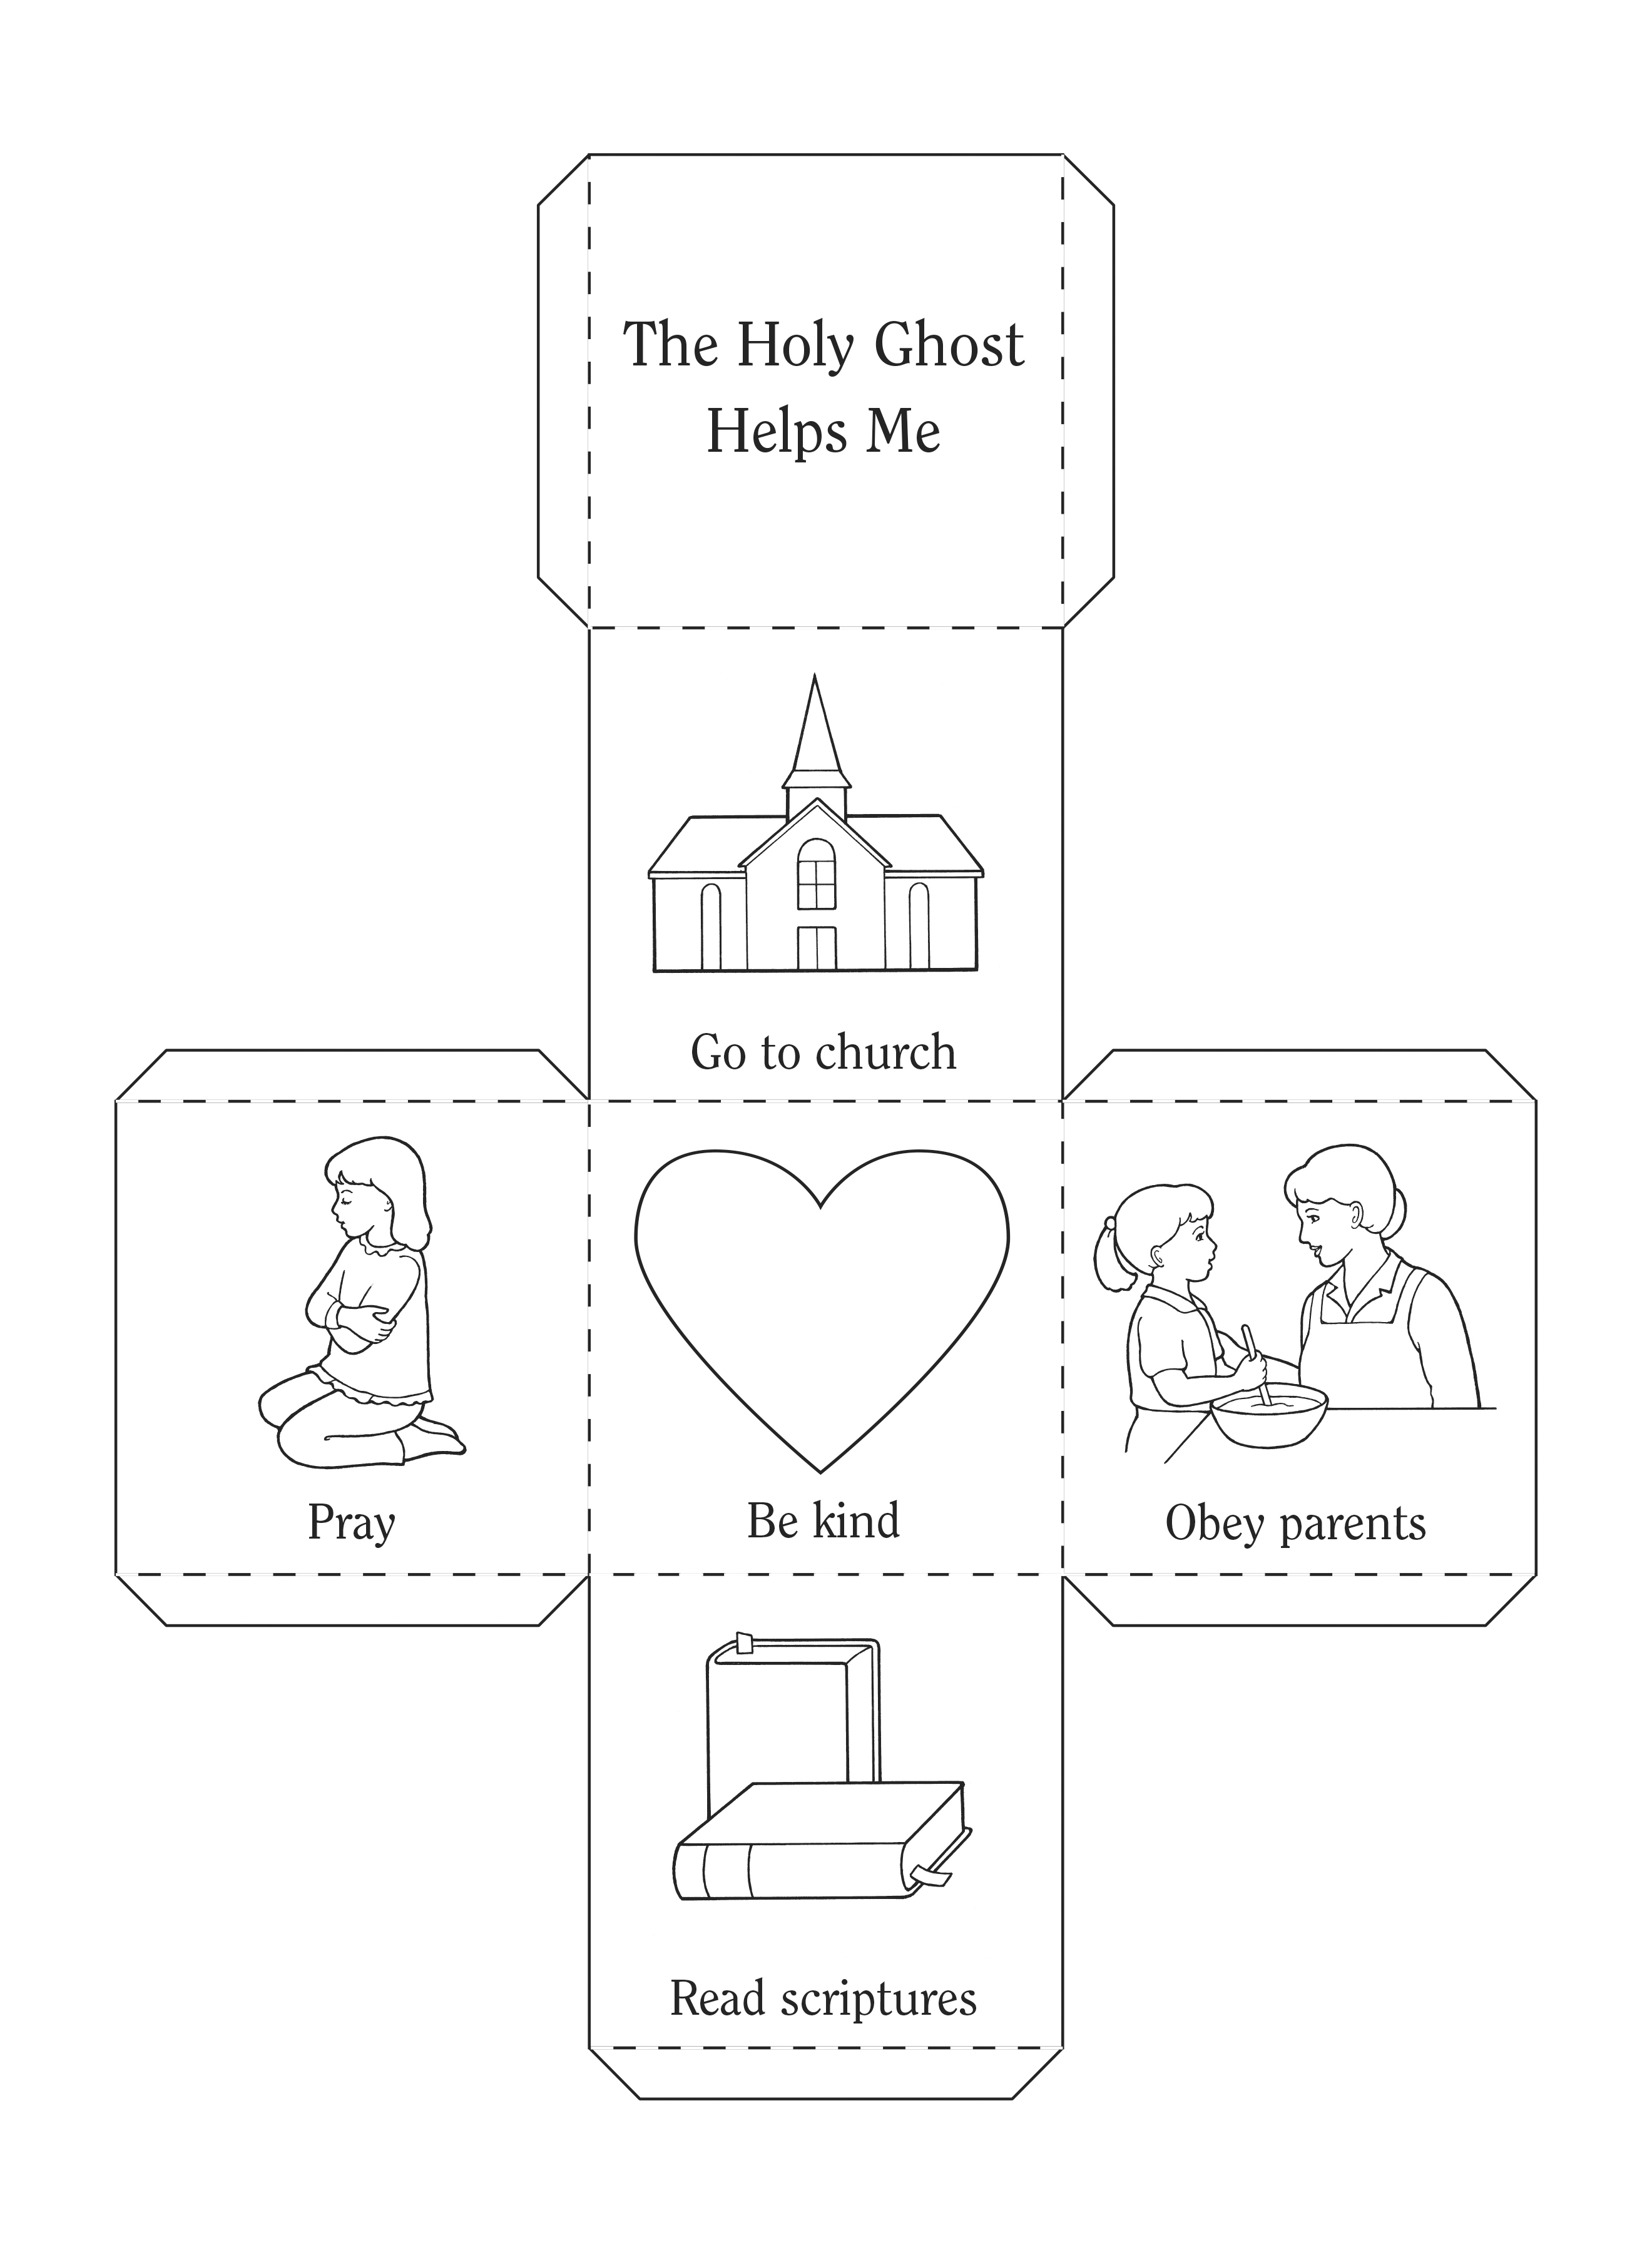 An illustration and activity from lesson 6, page 31 in the nursery manual Behold Your Little Ones (2008).